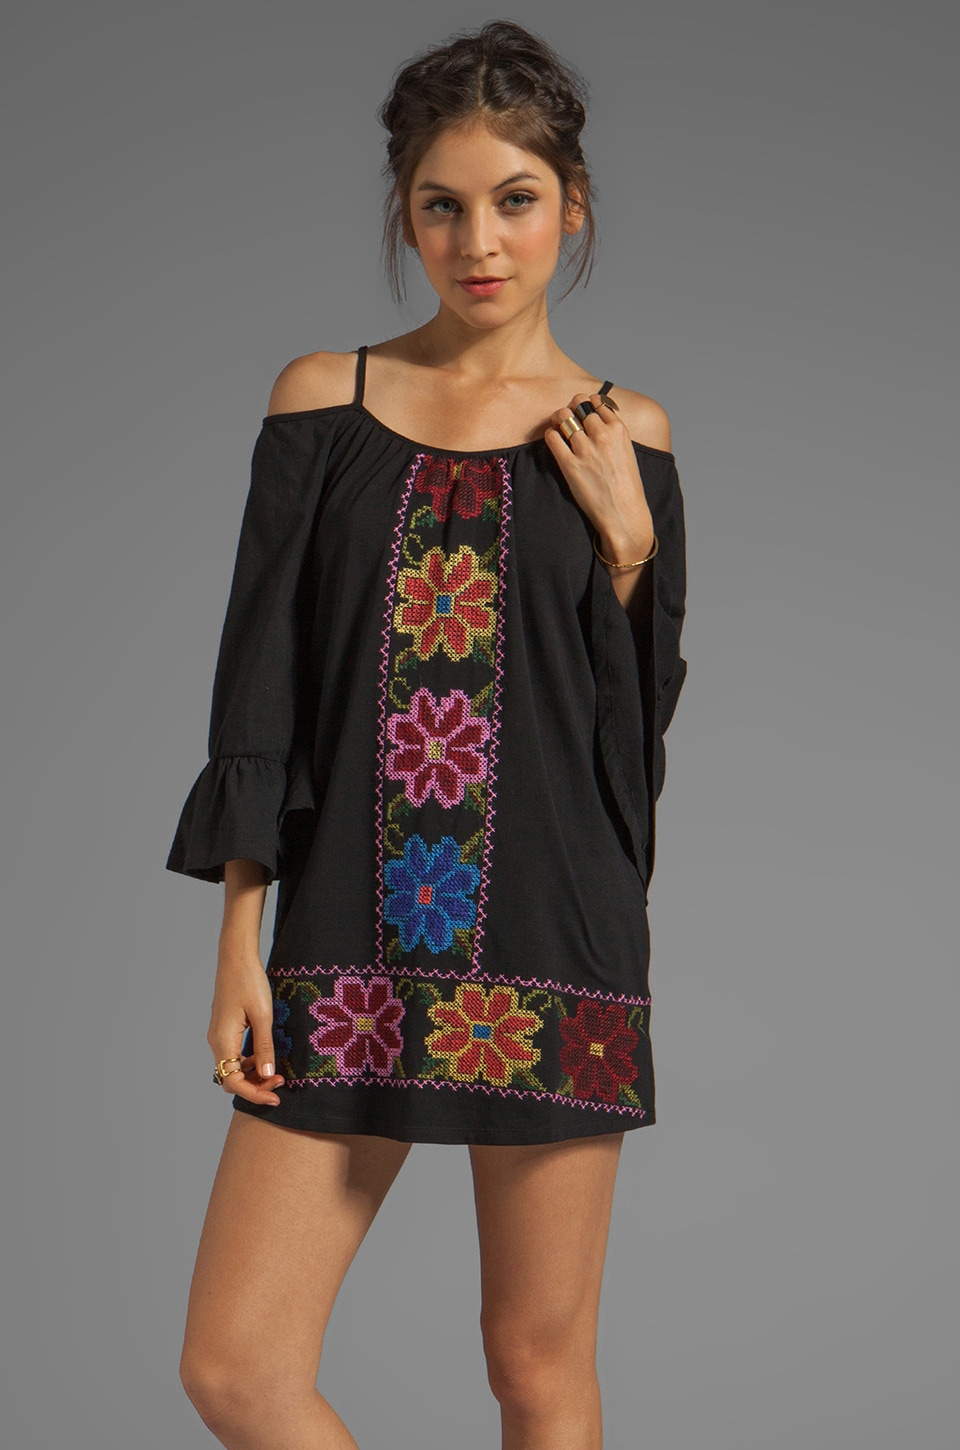 VAVA by Joy Han Embroidered Dress in Black